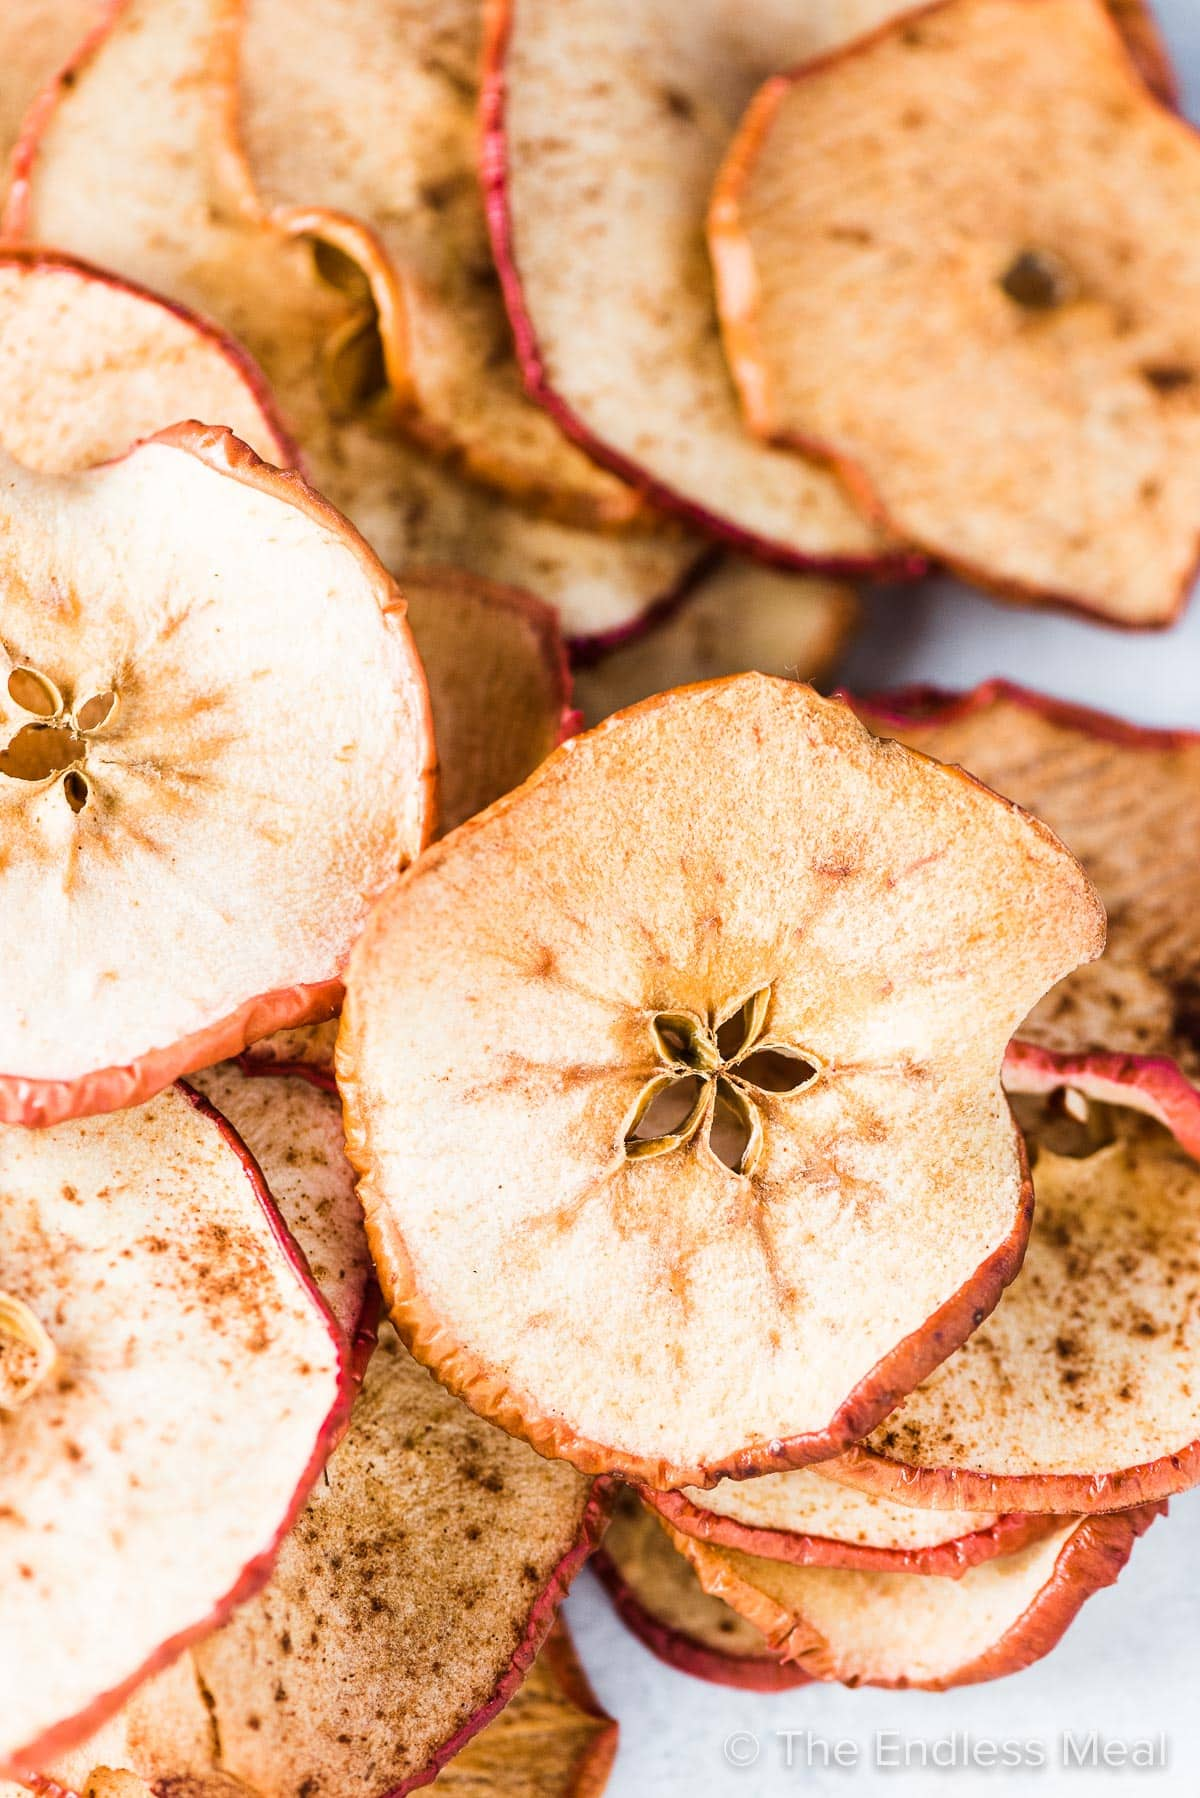 A big pile of baked apple chips.